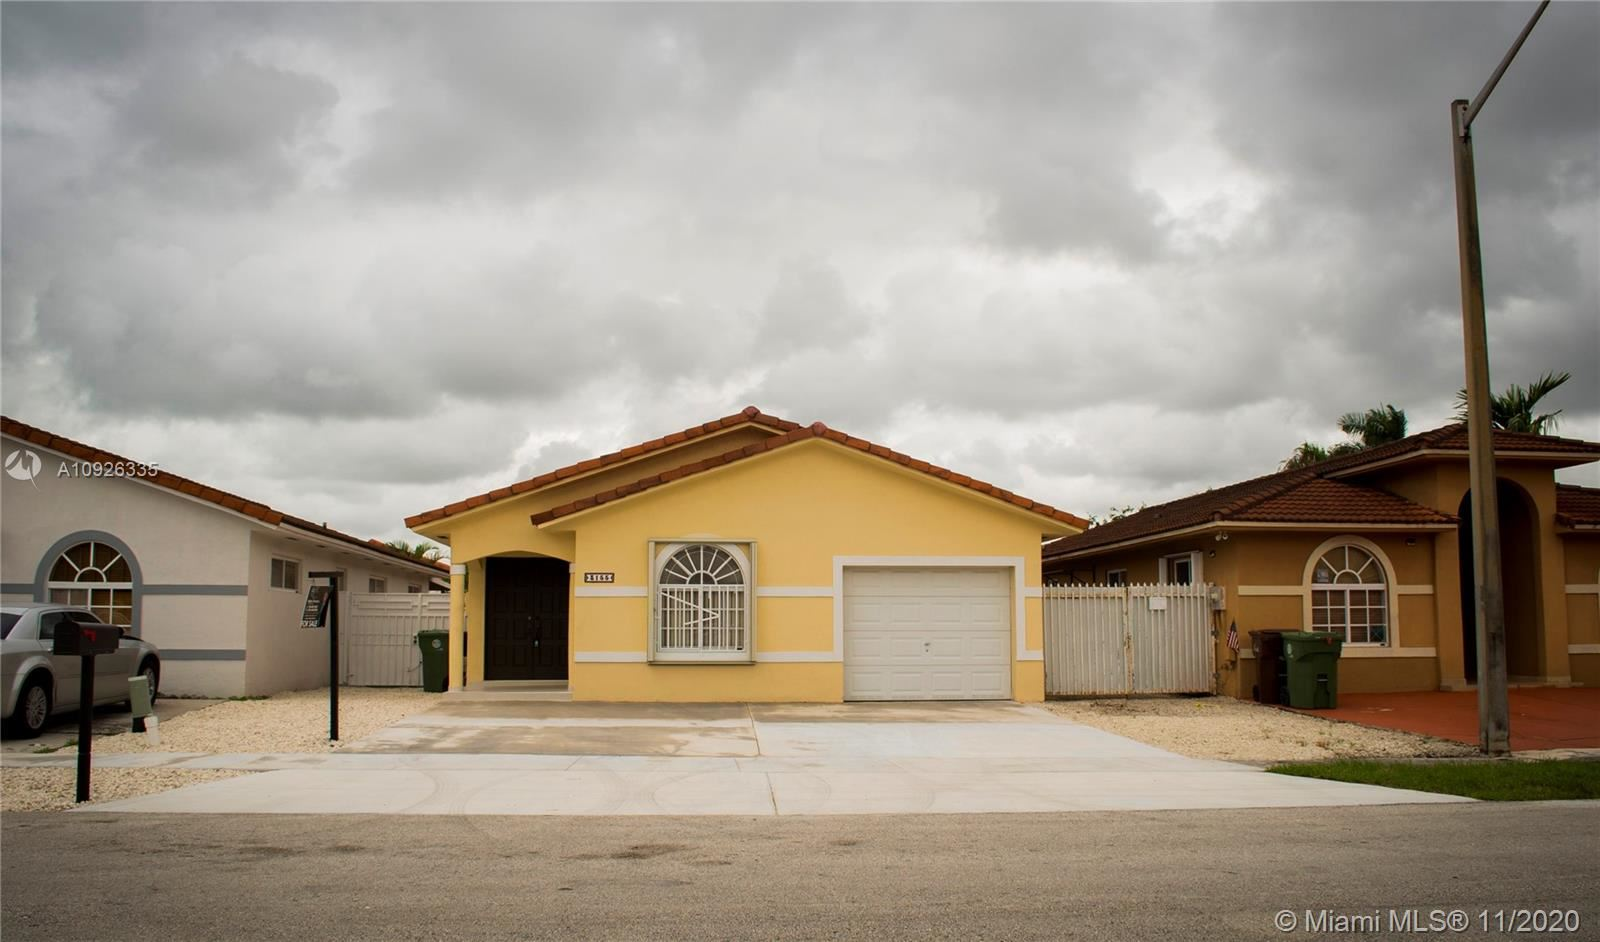 3155 W 77th Pl, Hialeah, FL 33018 - #: A10926335